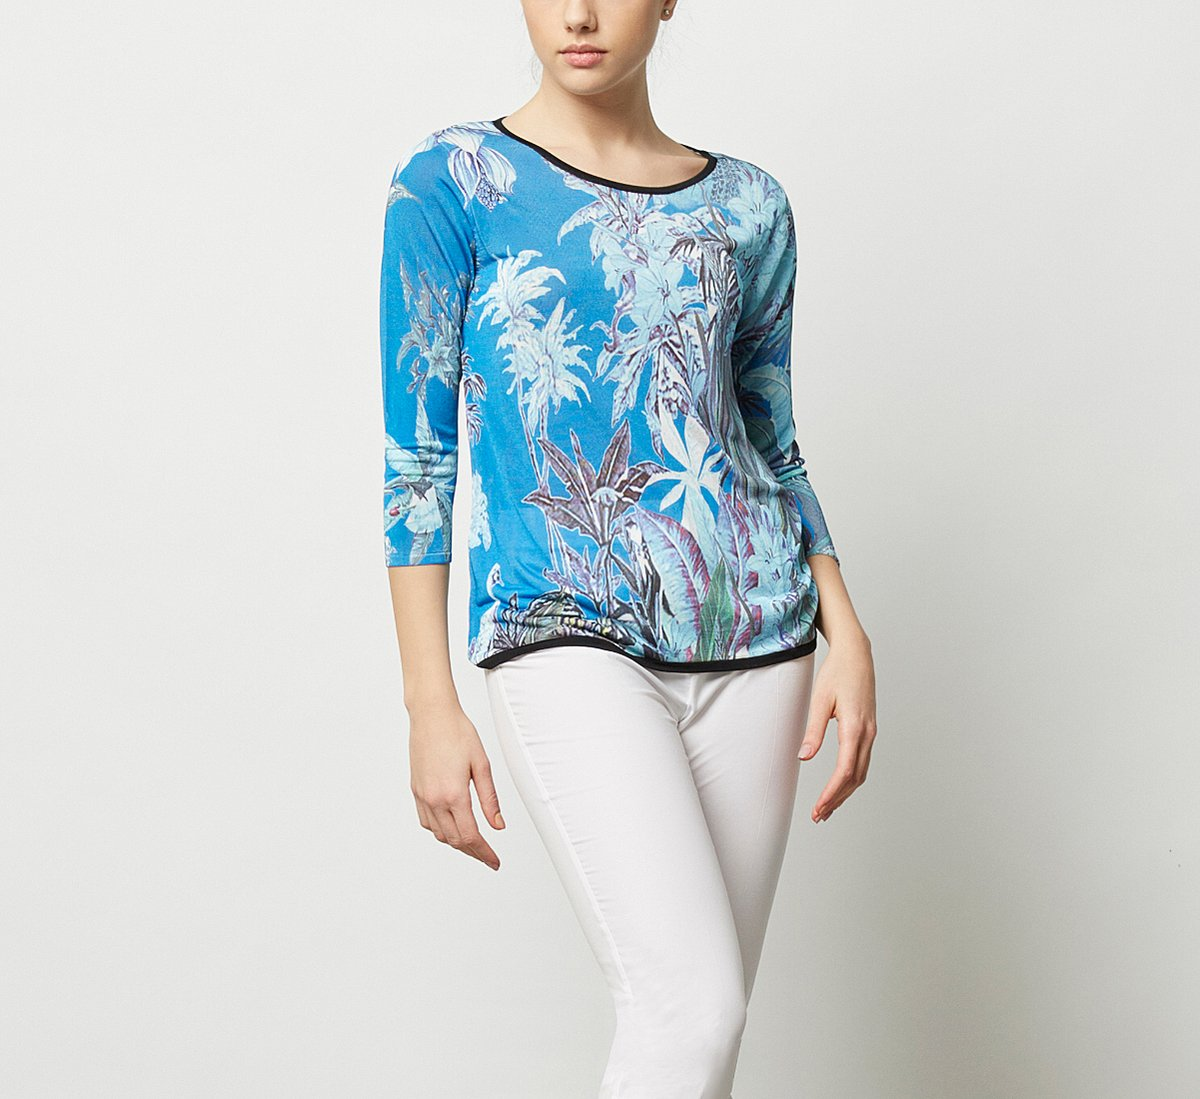 Fabric sweater with floral print